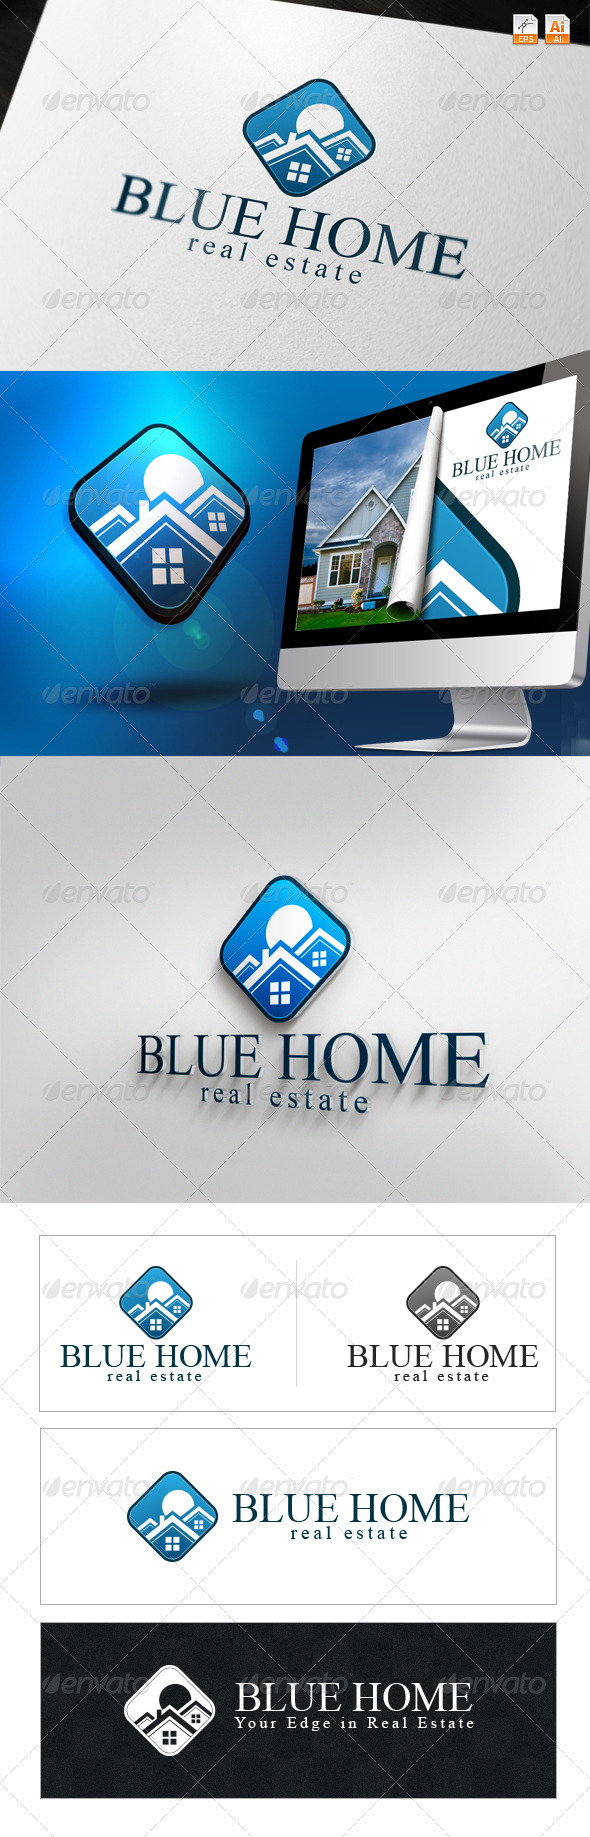 Blue Home - Real Estate Logo - Buildings Logo Templates